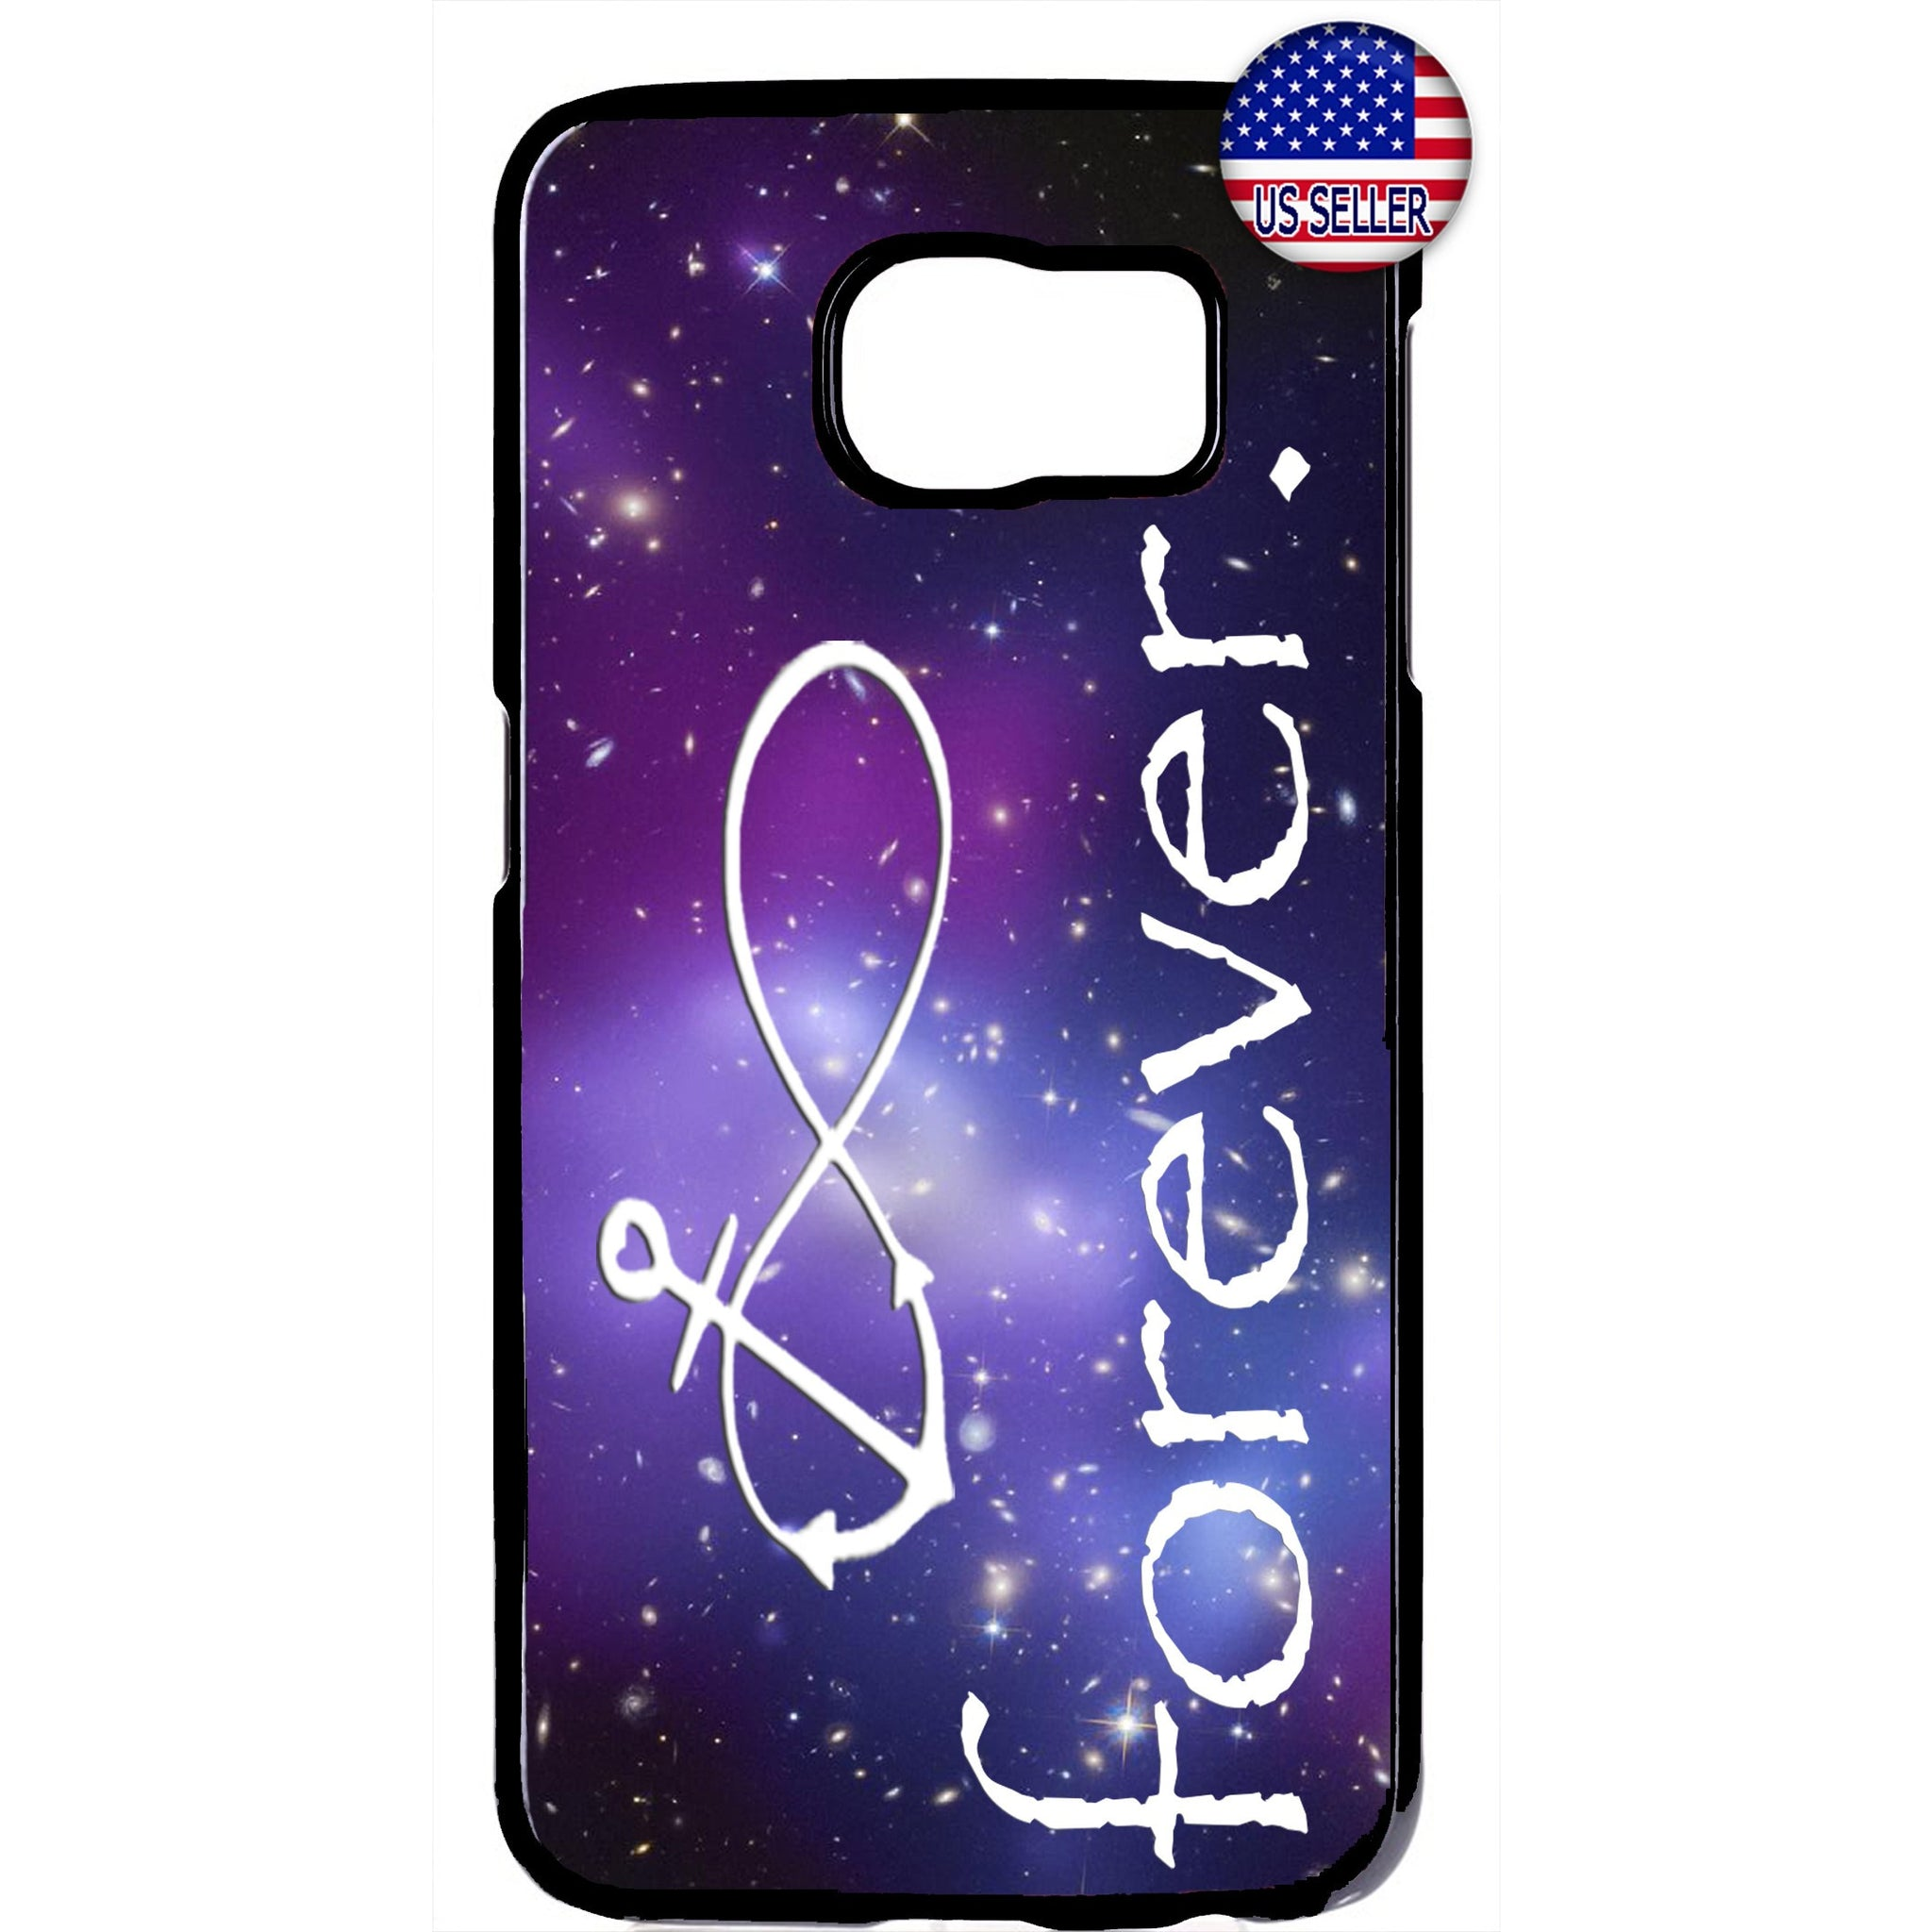 Infinite Love Anchor Galaxy Nebula Rubber Case Cover For Samsung Galaxy